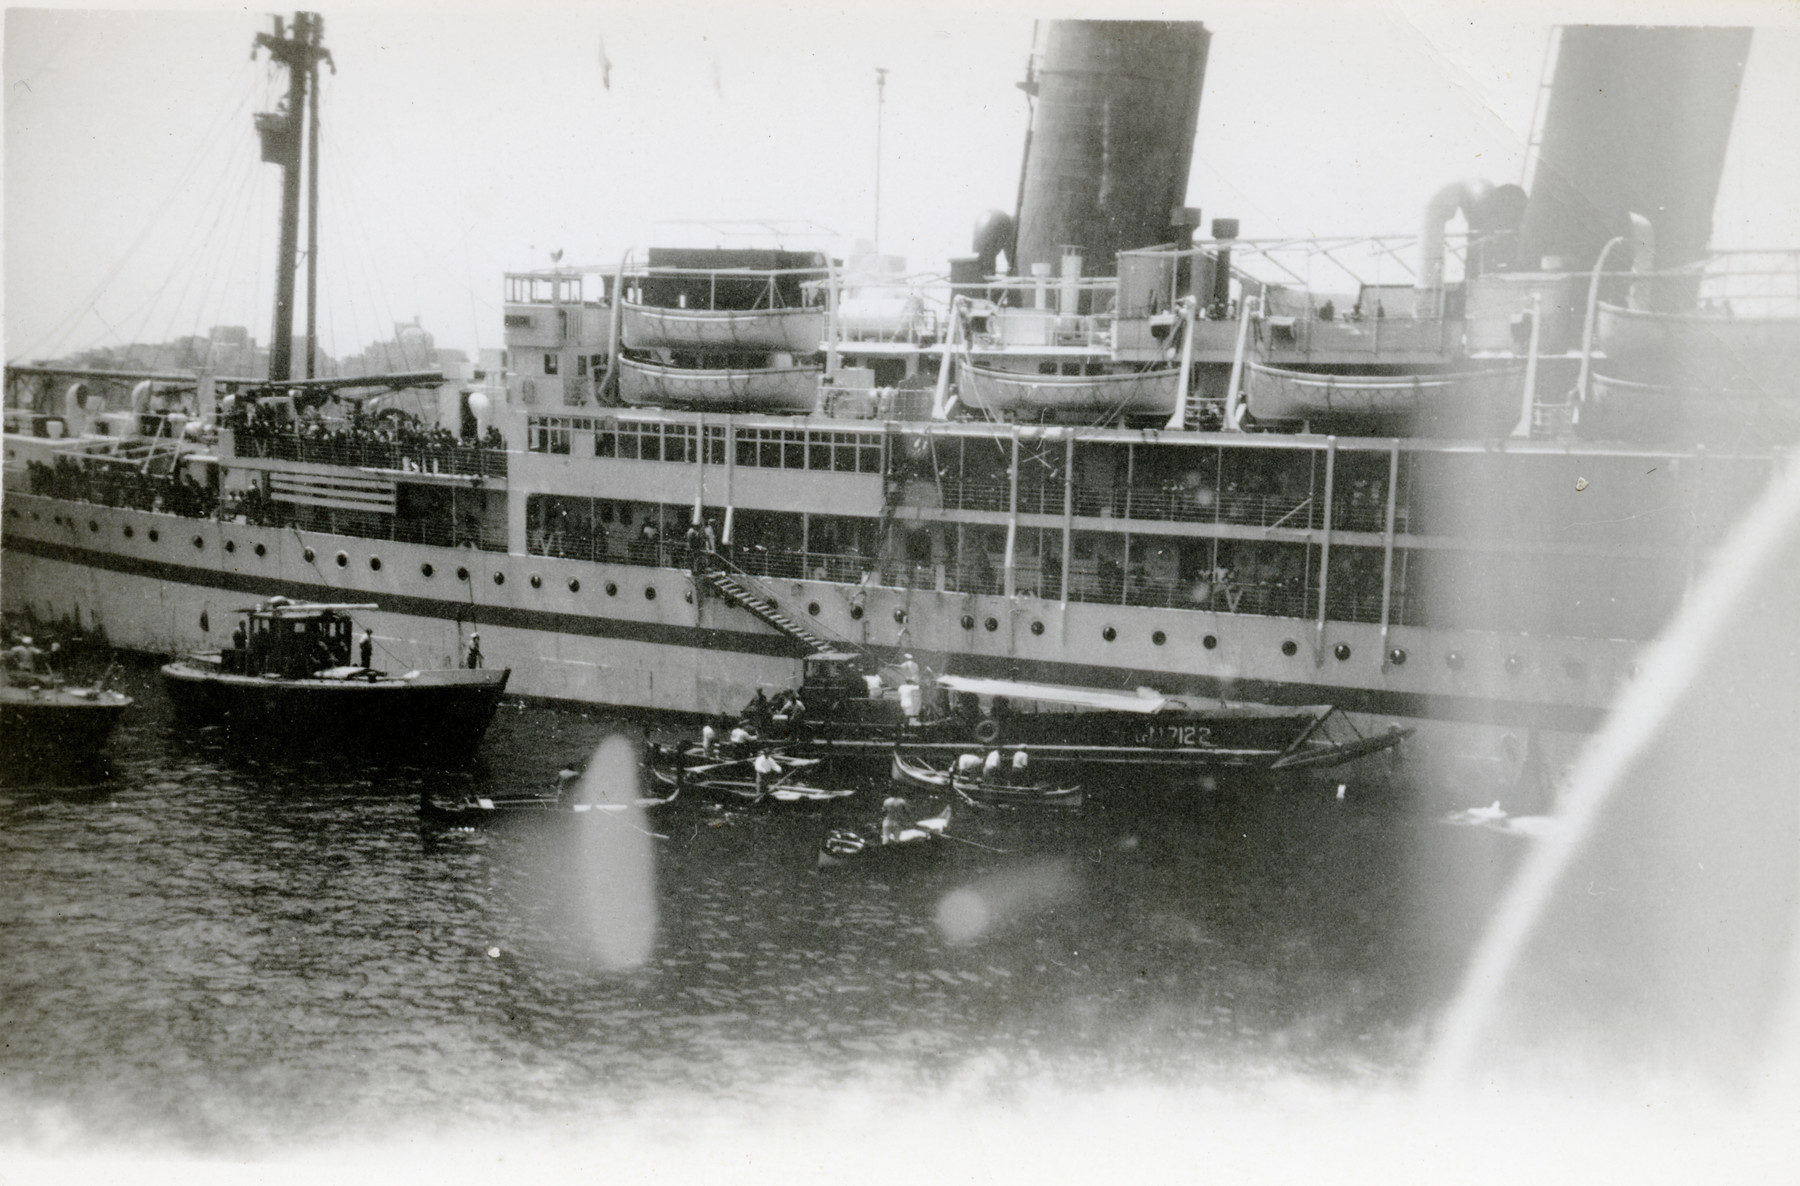 An exterior view of the ship Negba, which carried Jews to Israel.